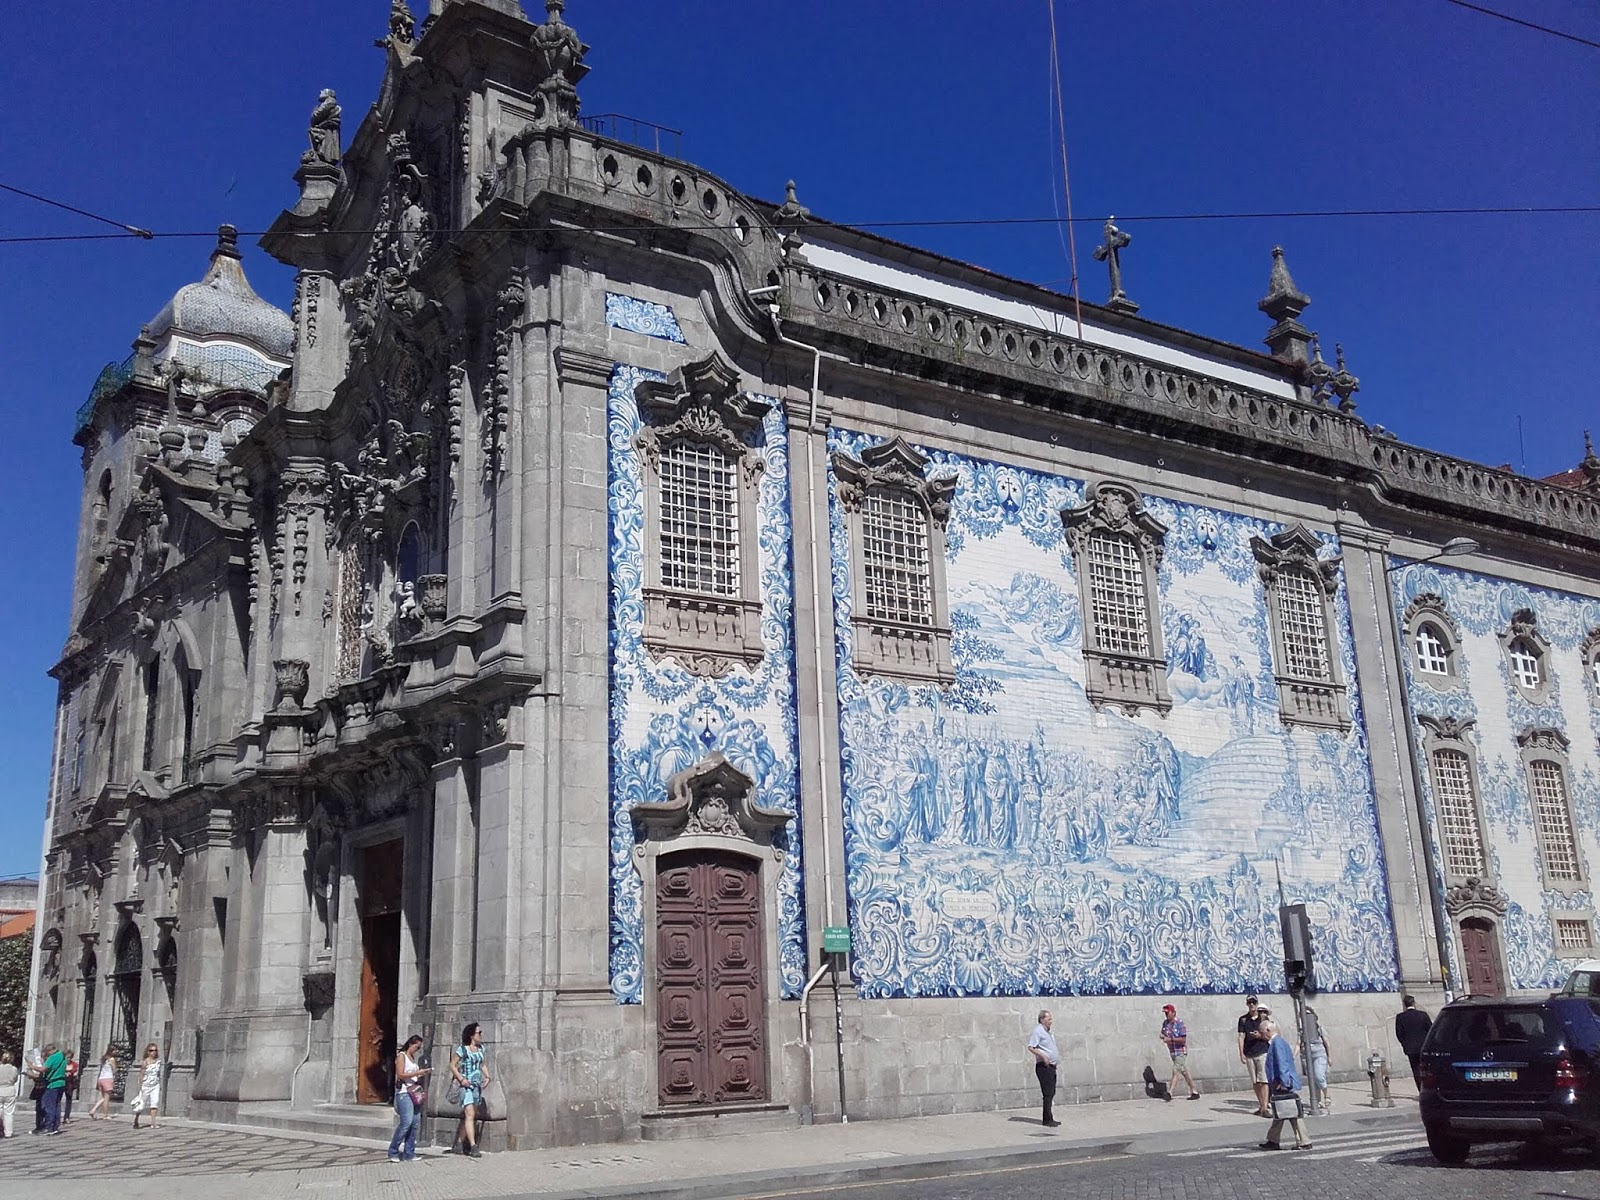 Cycling in Porto to see great Portuguese architecture